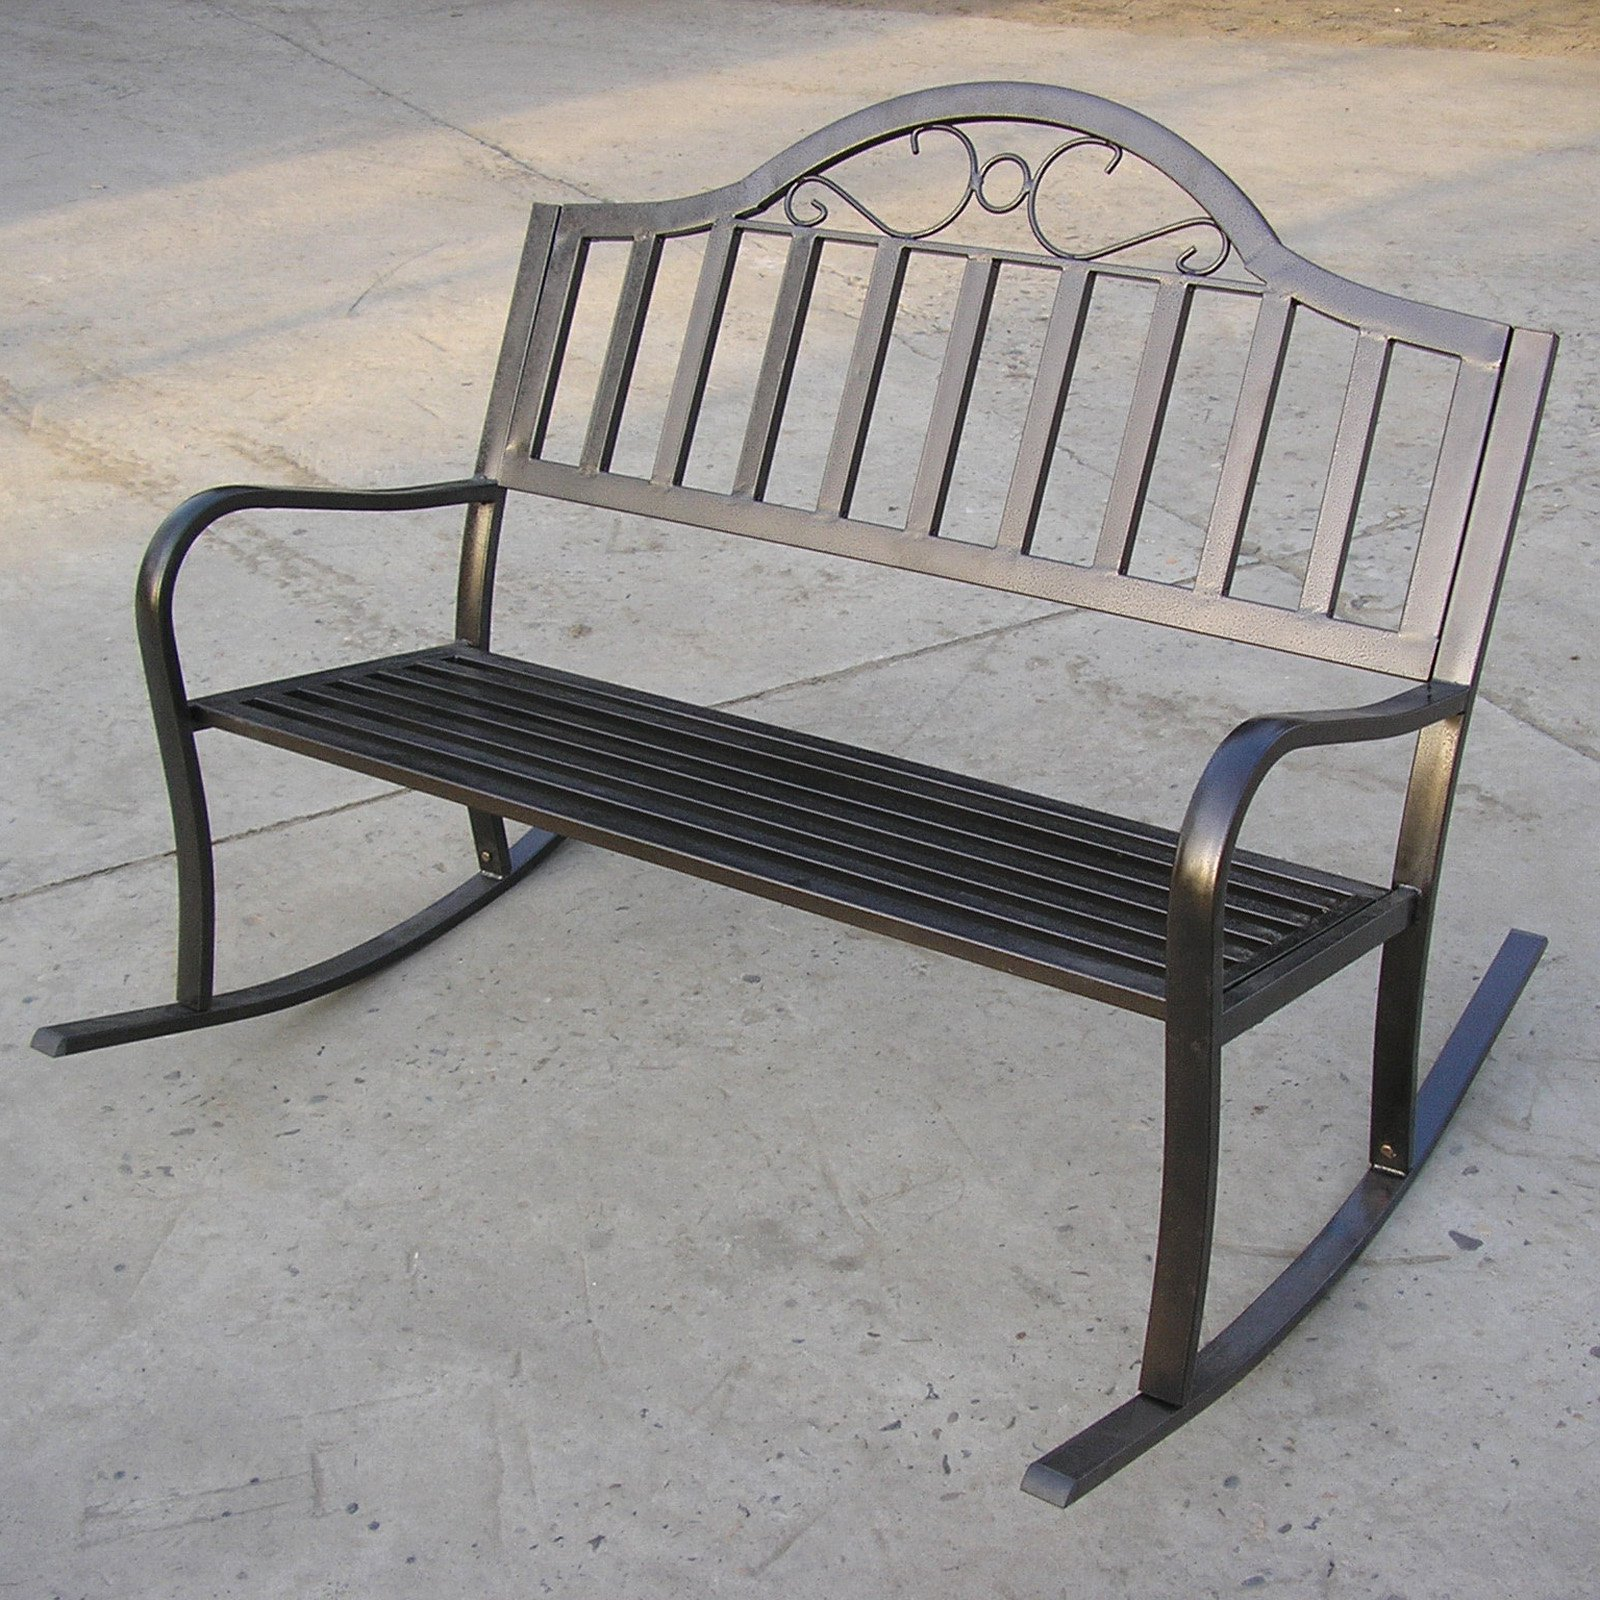 Oakland Living Rochester 50 in. Tubular Iron Rocking Bench in Hammer Tone Bronze Finish